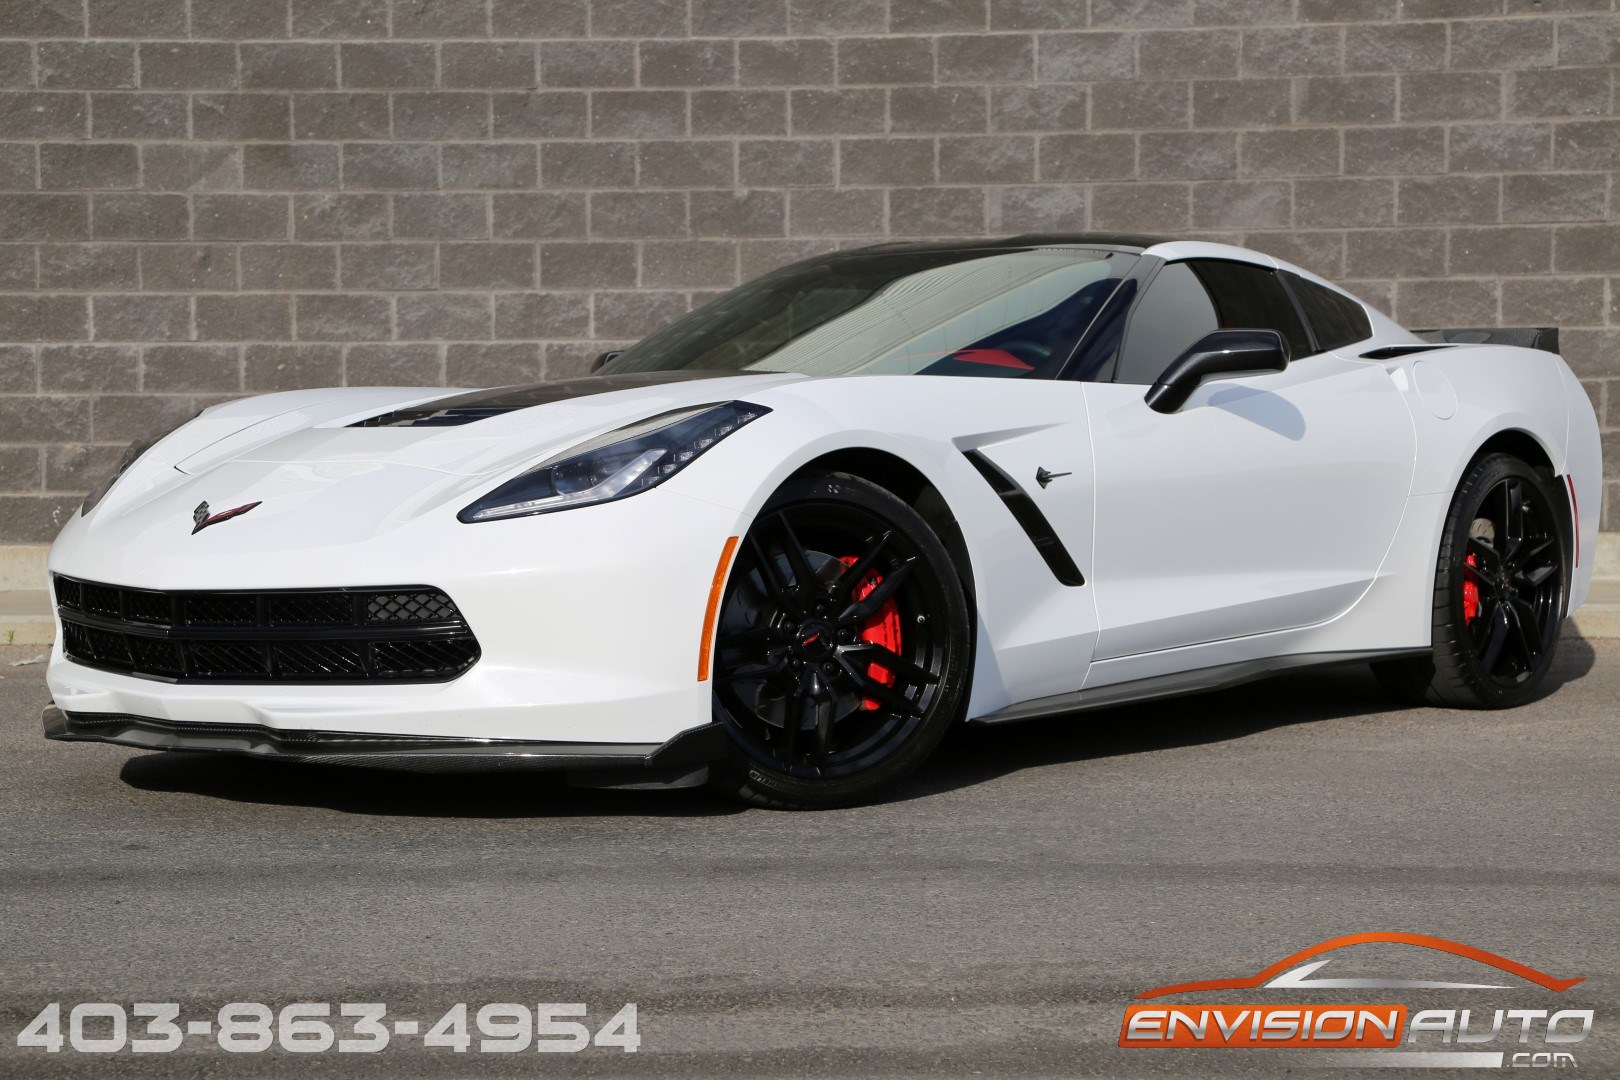 2015 chevrolet corvette stingray 3lt z51 competition seats envision auto. Black Bedroom Furniture Sets. Home Design Ideas